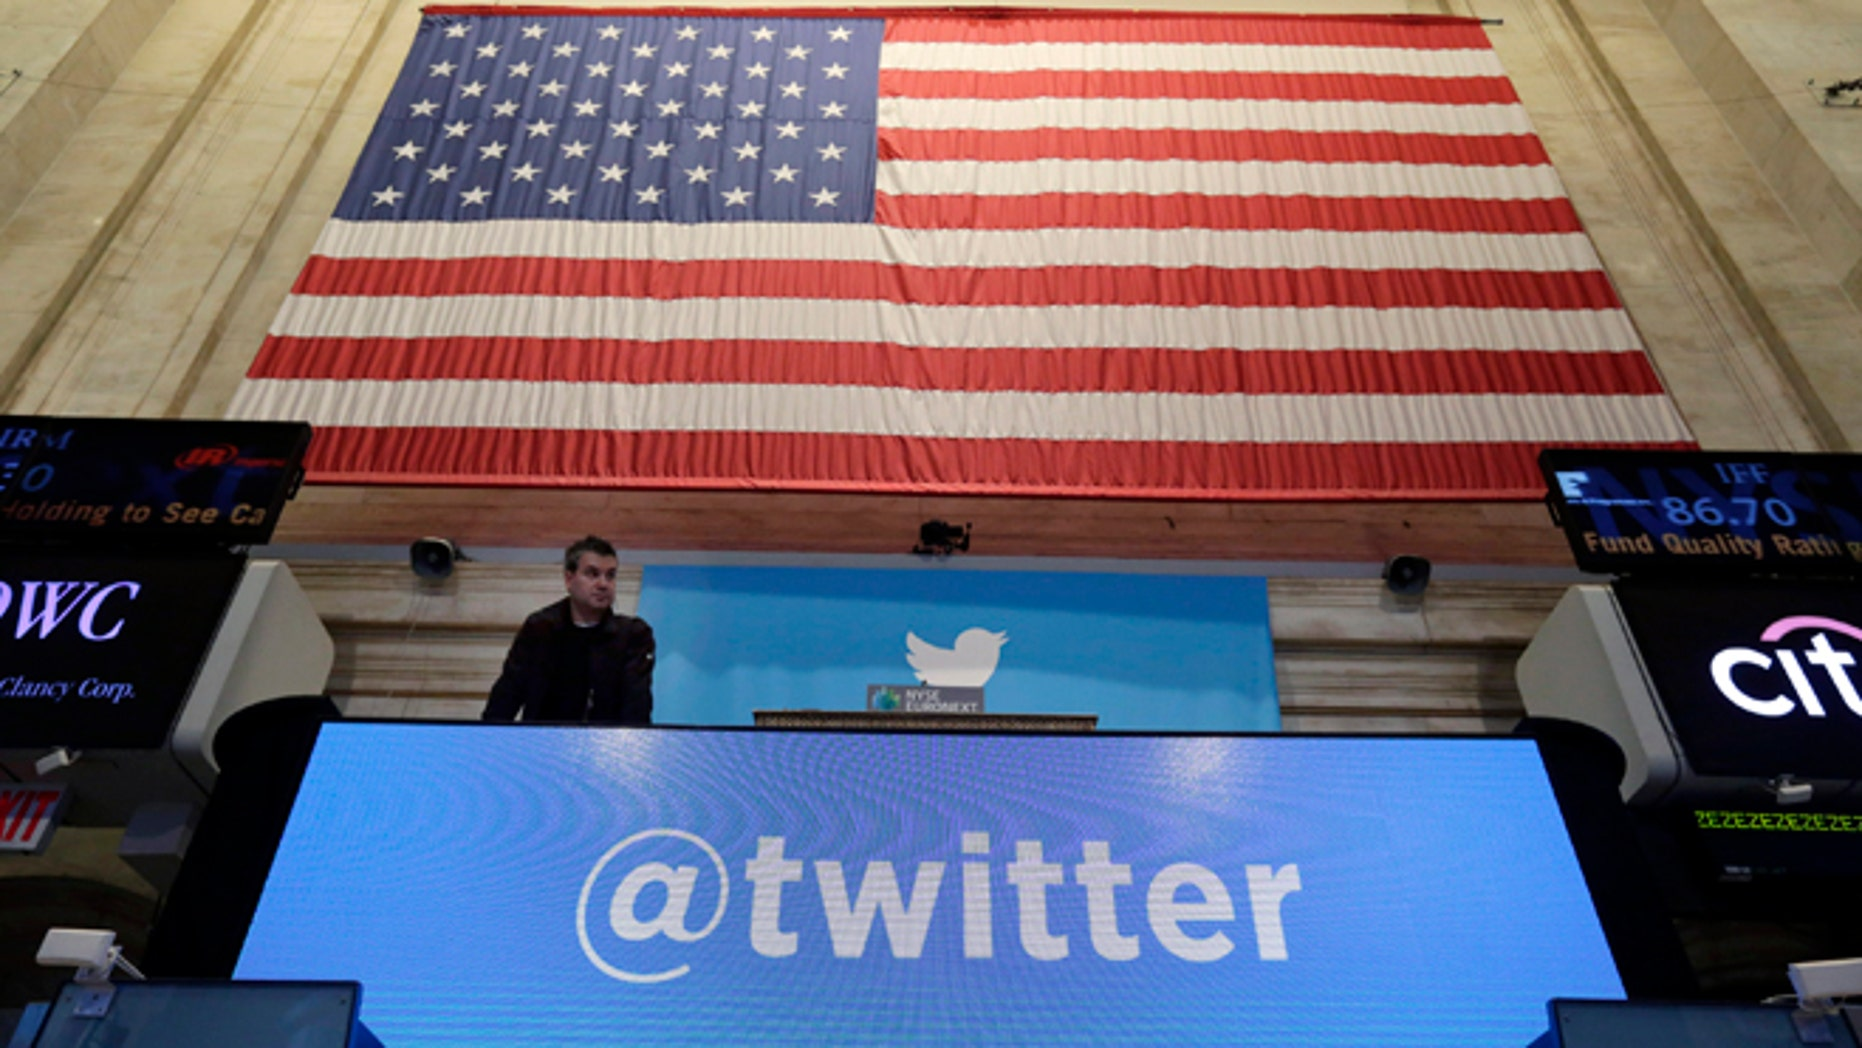 Twitter On Twitter Stock Ticker Trends But Others Shrug As Wall Street Gears For Ipo Fox News